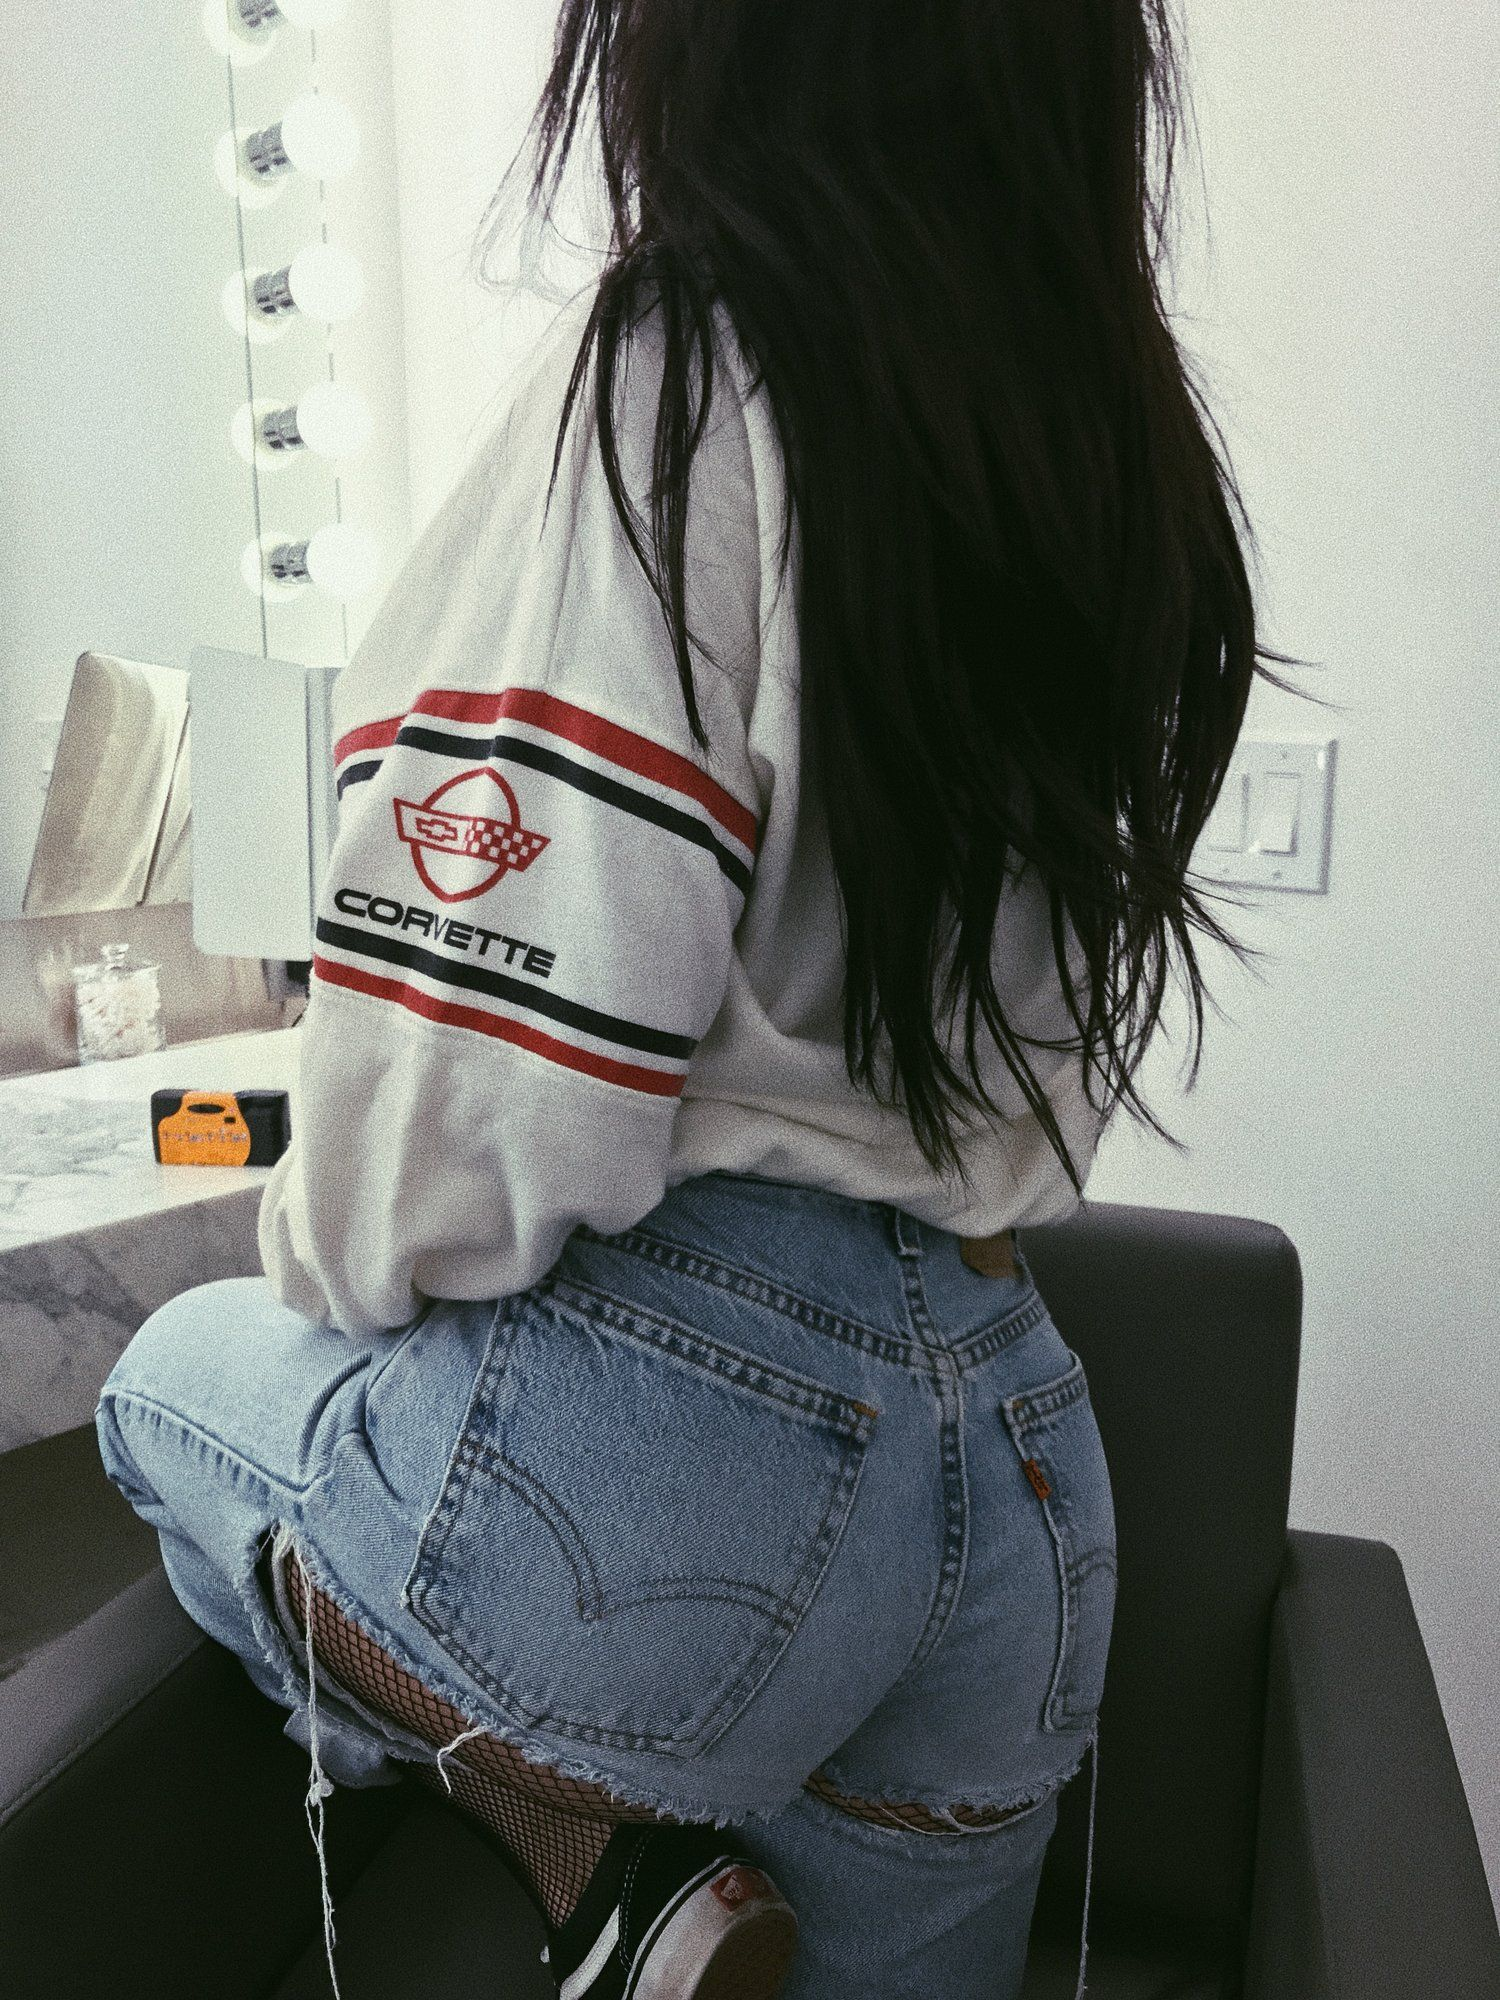 Pin by Kiana Booker on Fashion Trends in 2019 | Fashion ...